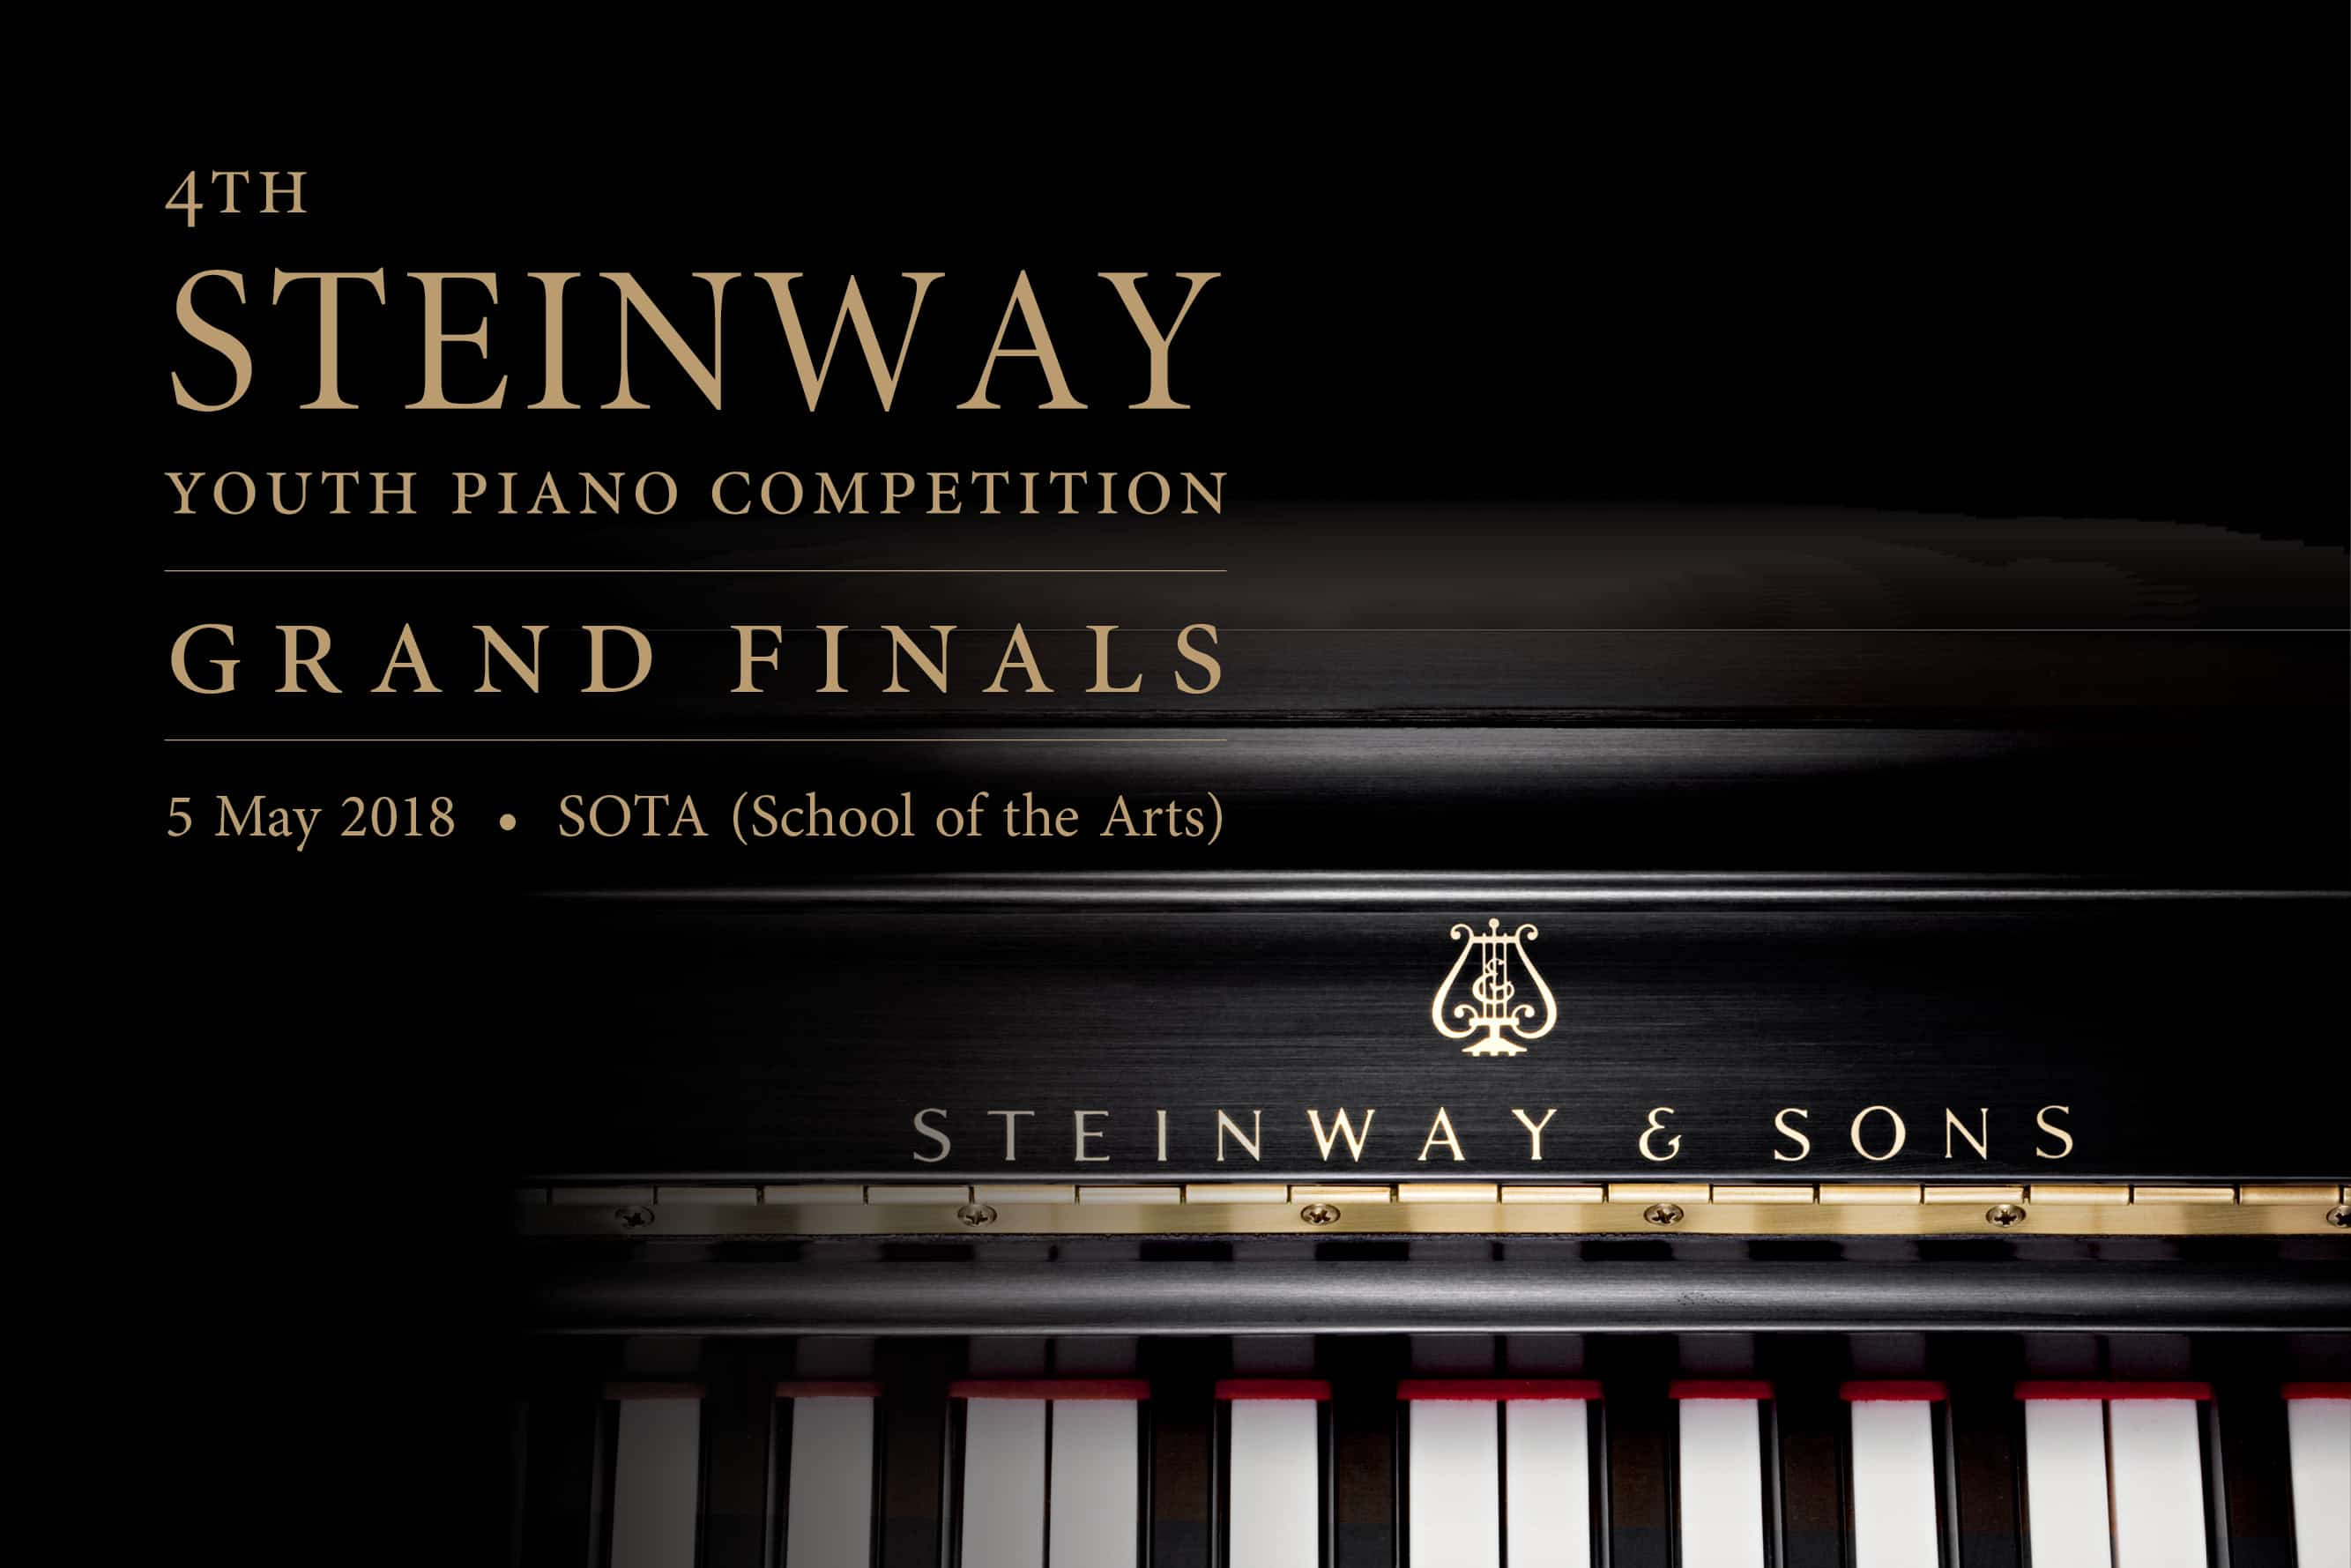 4th Steinway Youth Piano Competition - Grand Finals